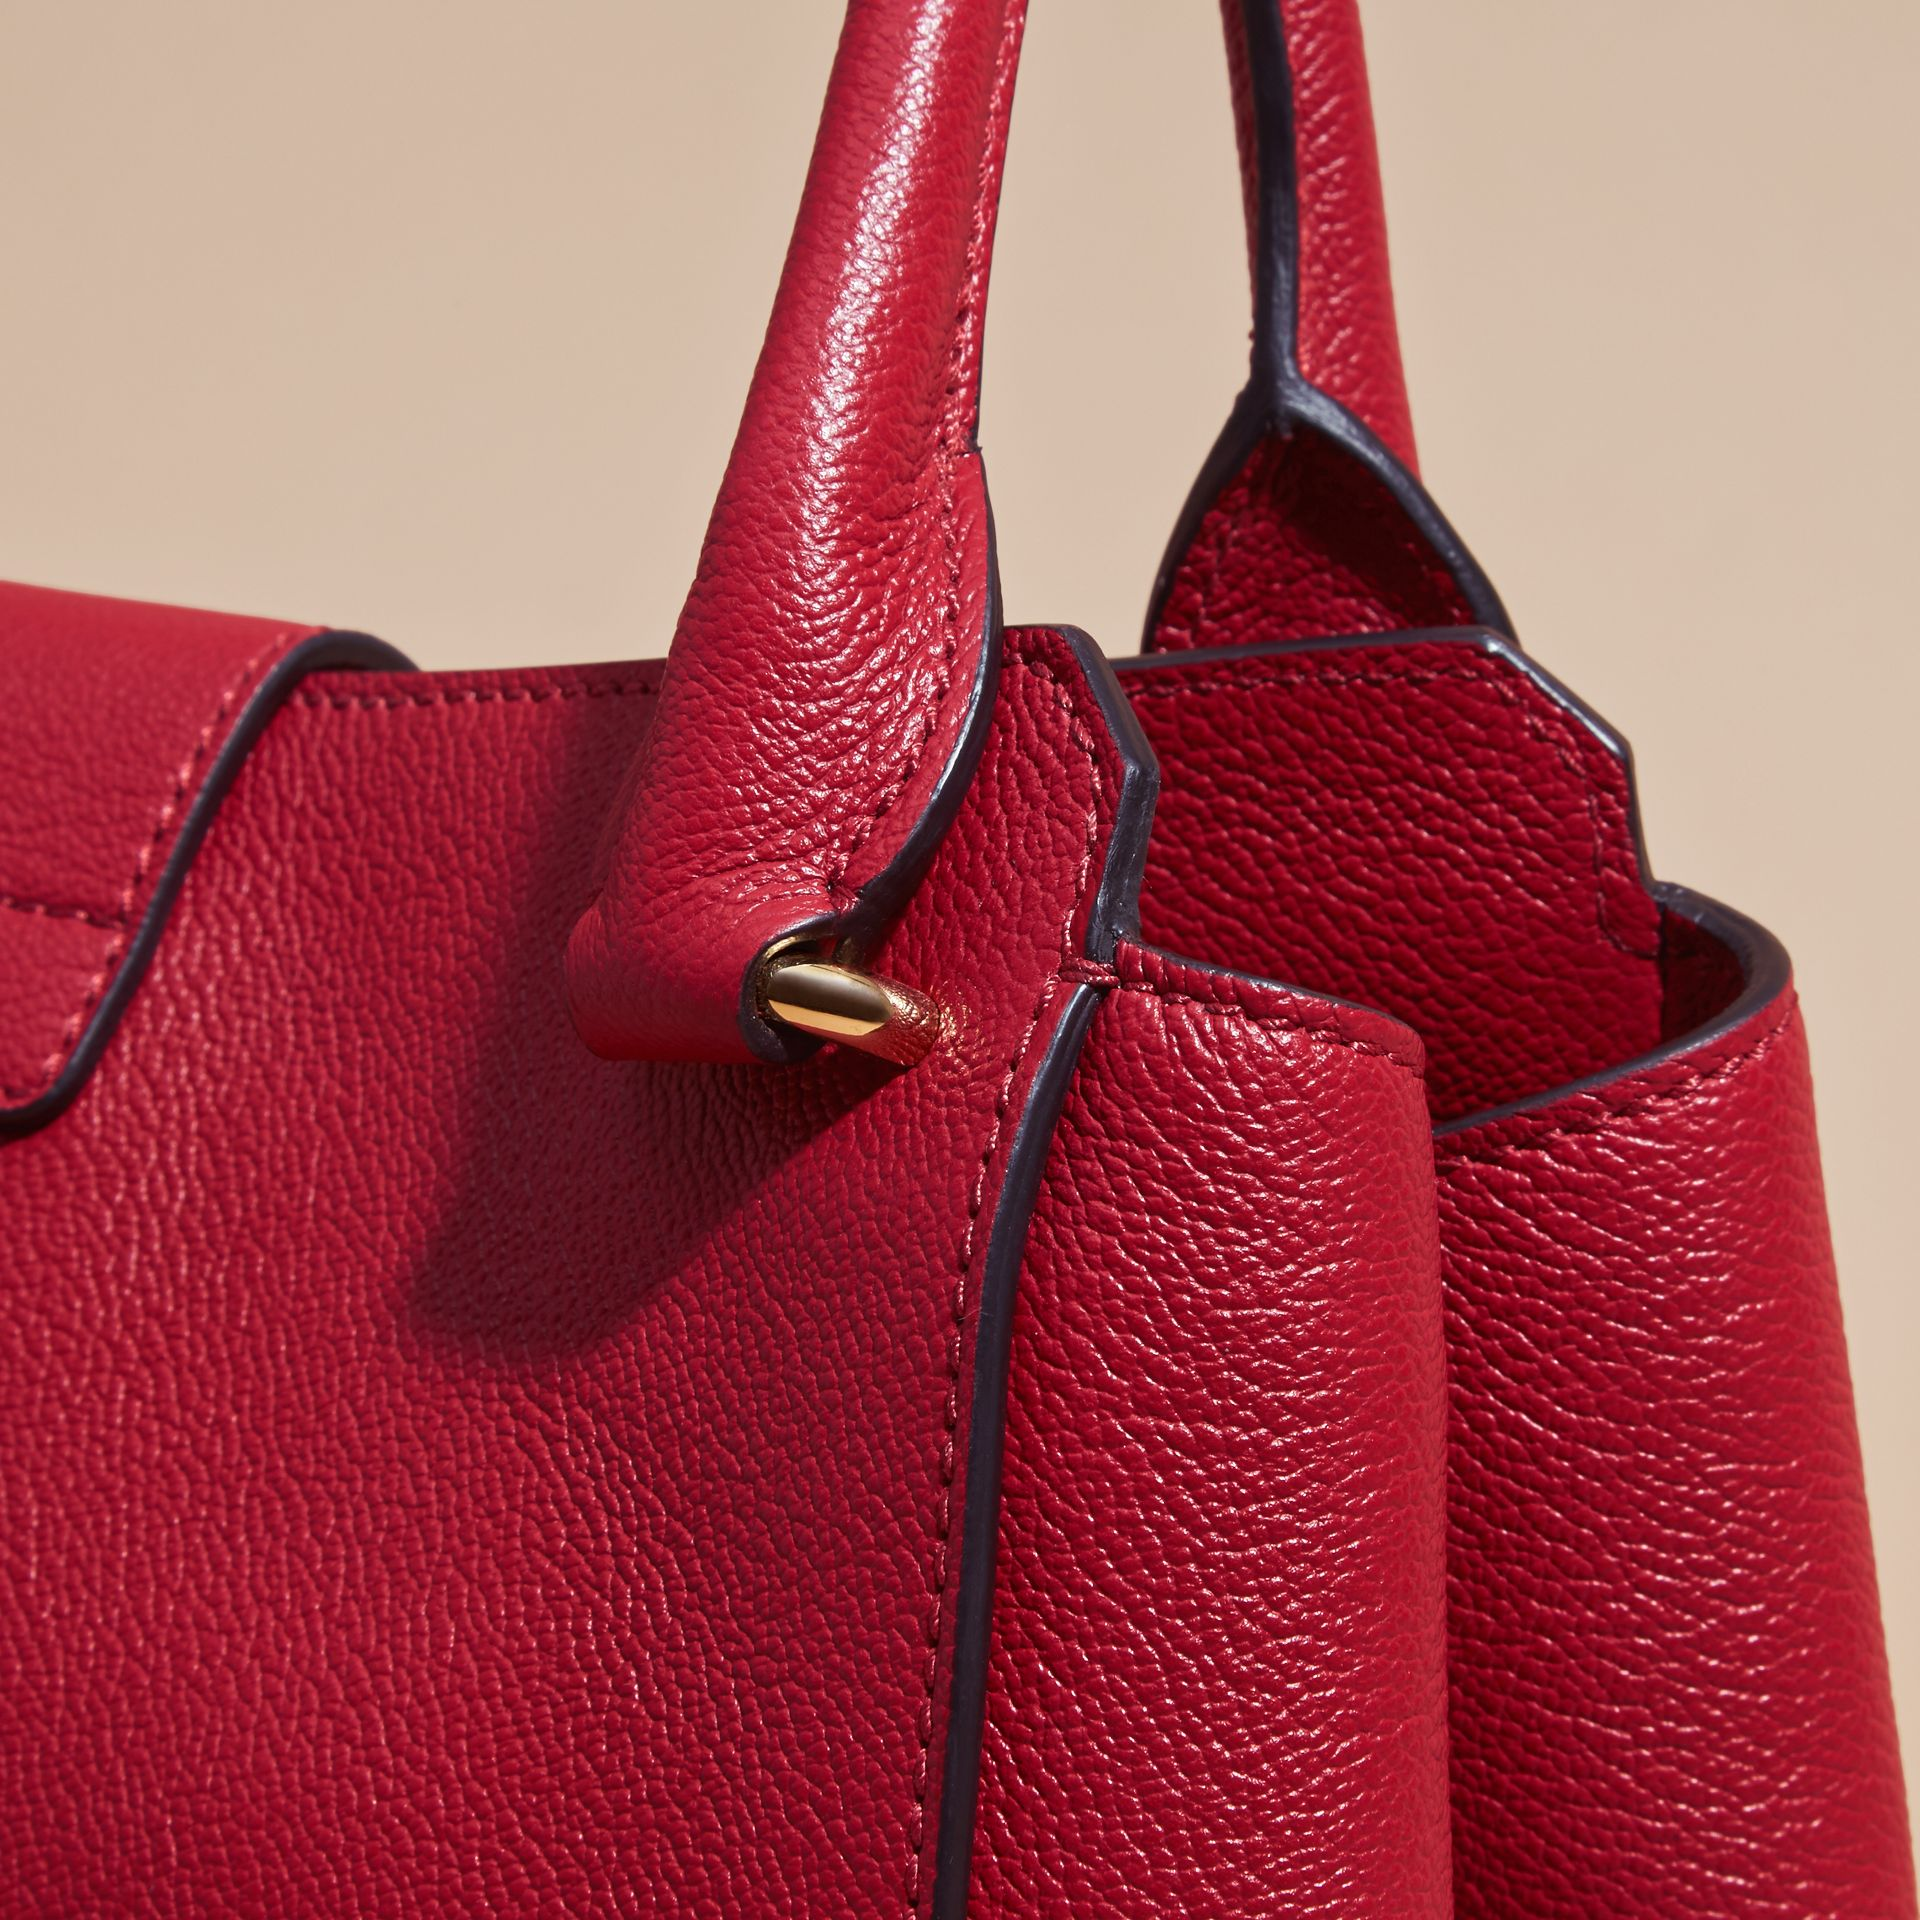 The Medium Buckle Tote in Grainy Leather in Parade Red - Women | Burberry - gallery image 2